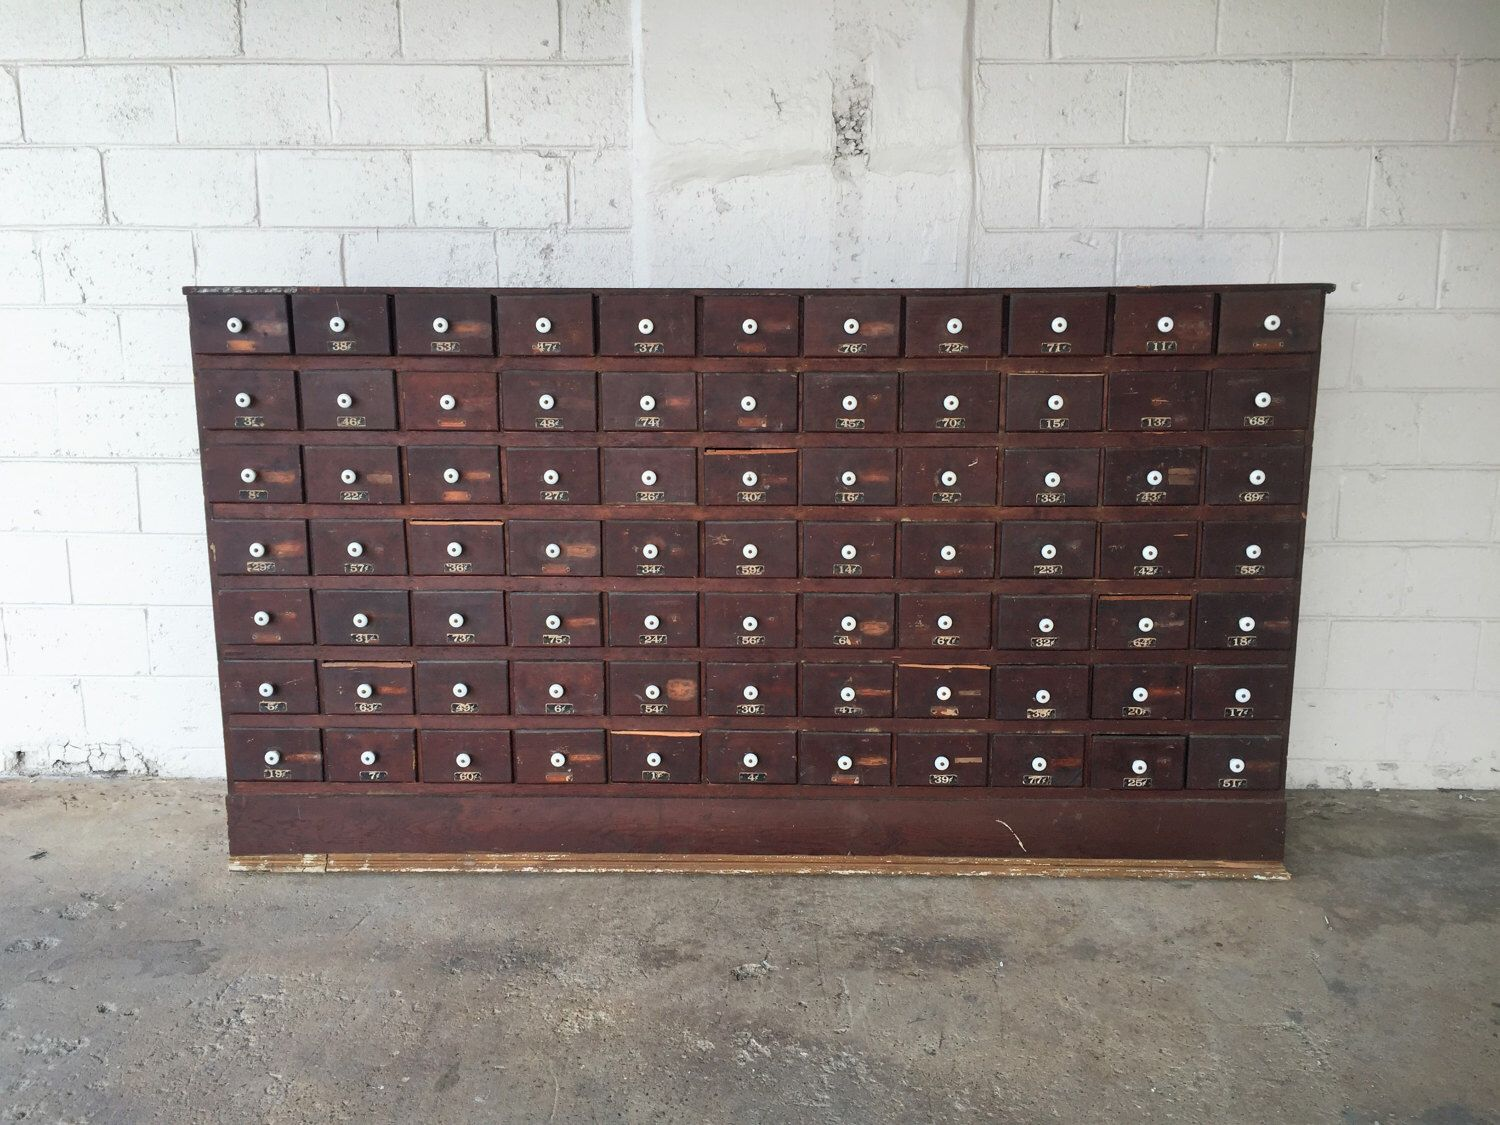 HUGE Antique Hardware Store 77 Drawer Wooden Apothecary Cabinet Parts Bin  Card Catalog General Store TV - HUGE Antique Hardware Store 77 Drawer Wooden Apothecary Cabinet